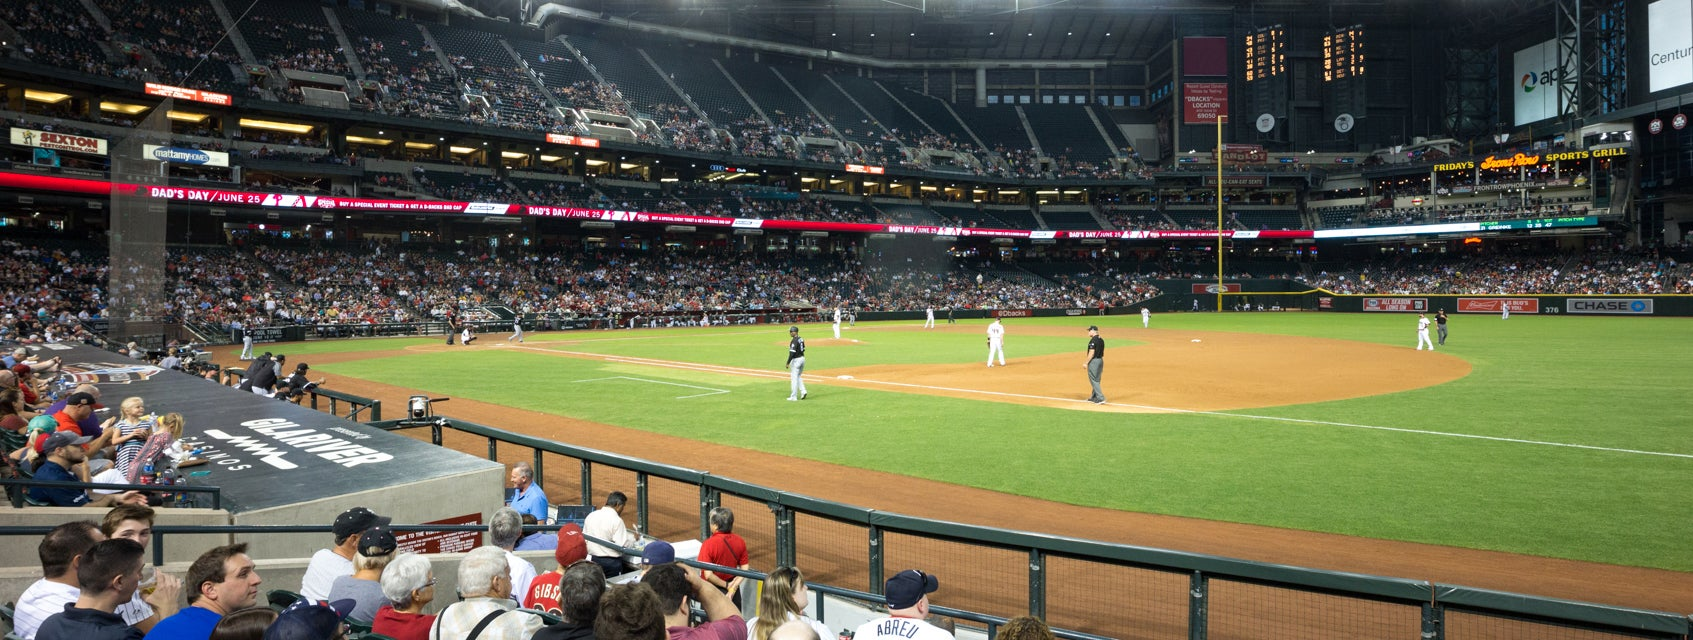 Seat view from First Base Box